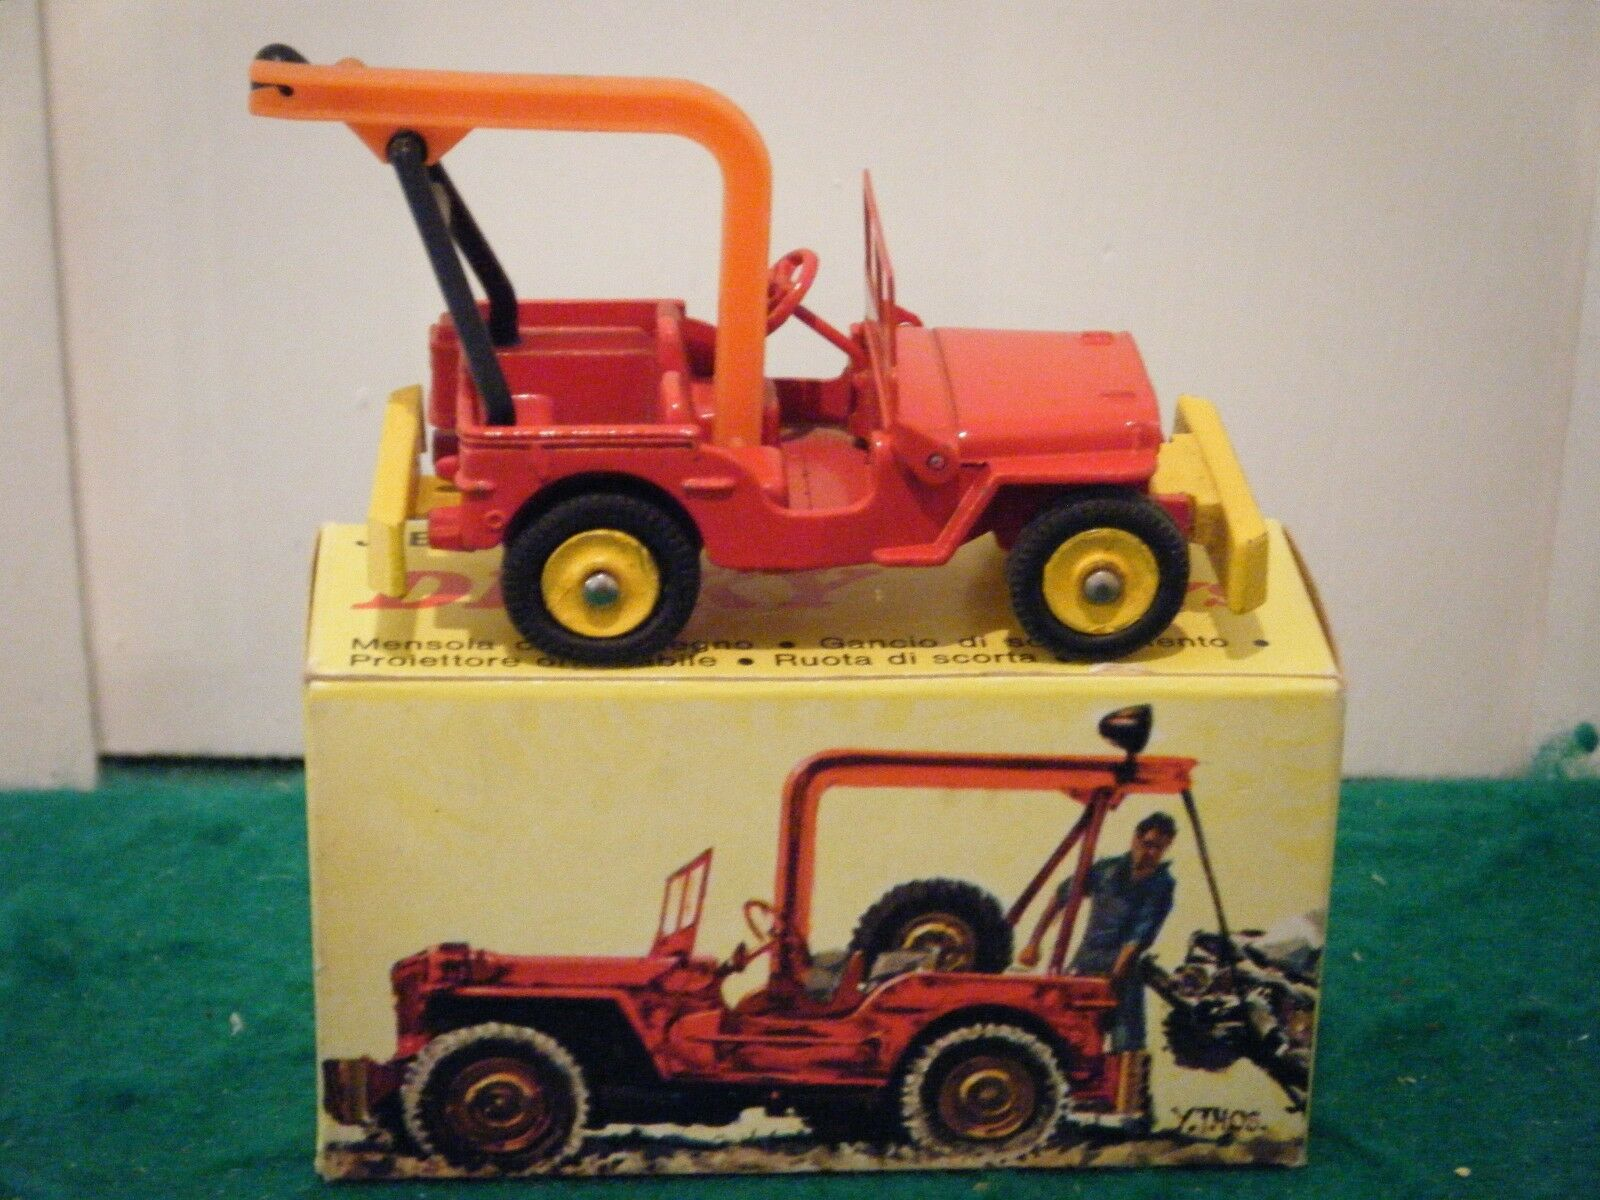 French dinky no: 1412